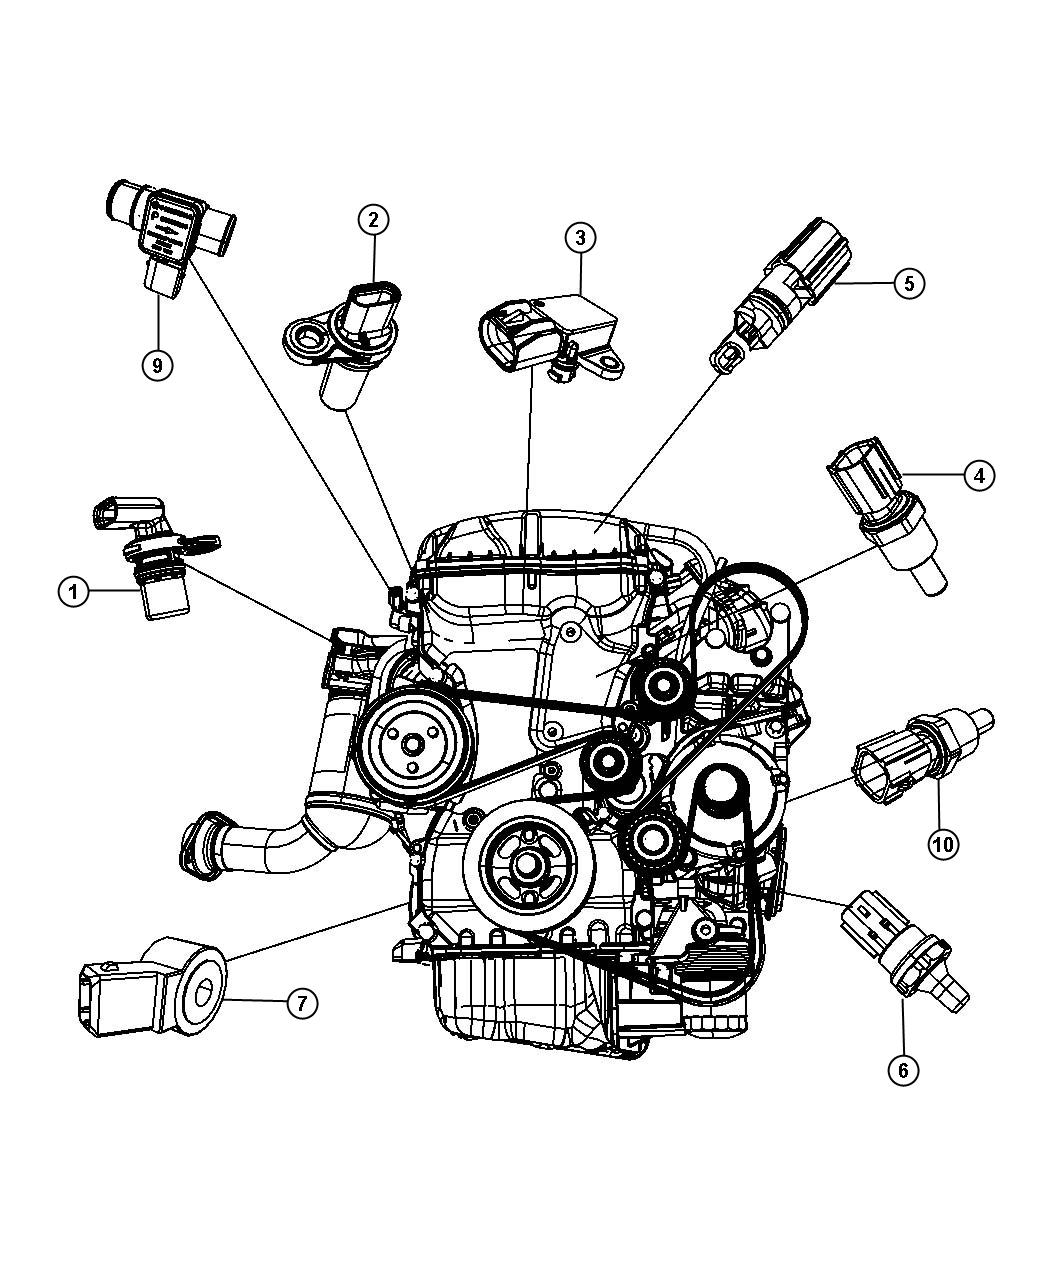 Gm Ecotec Engine Diagram